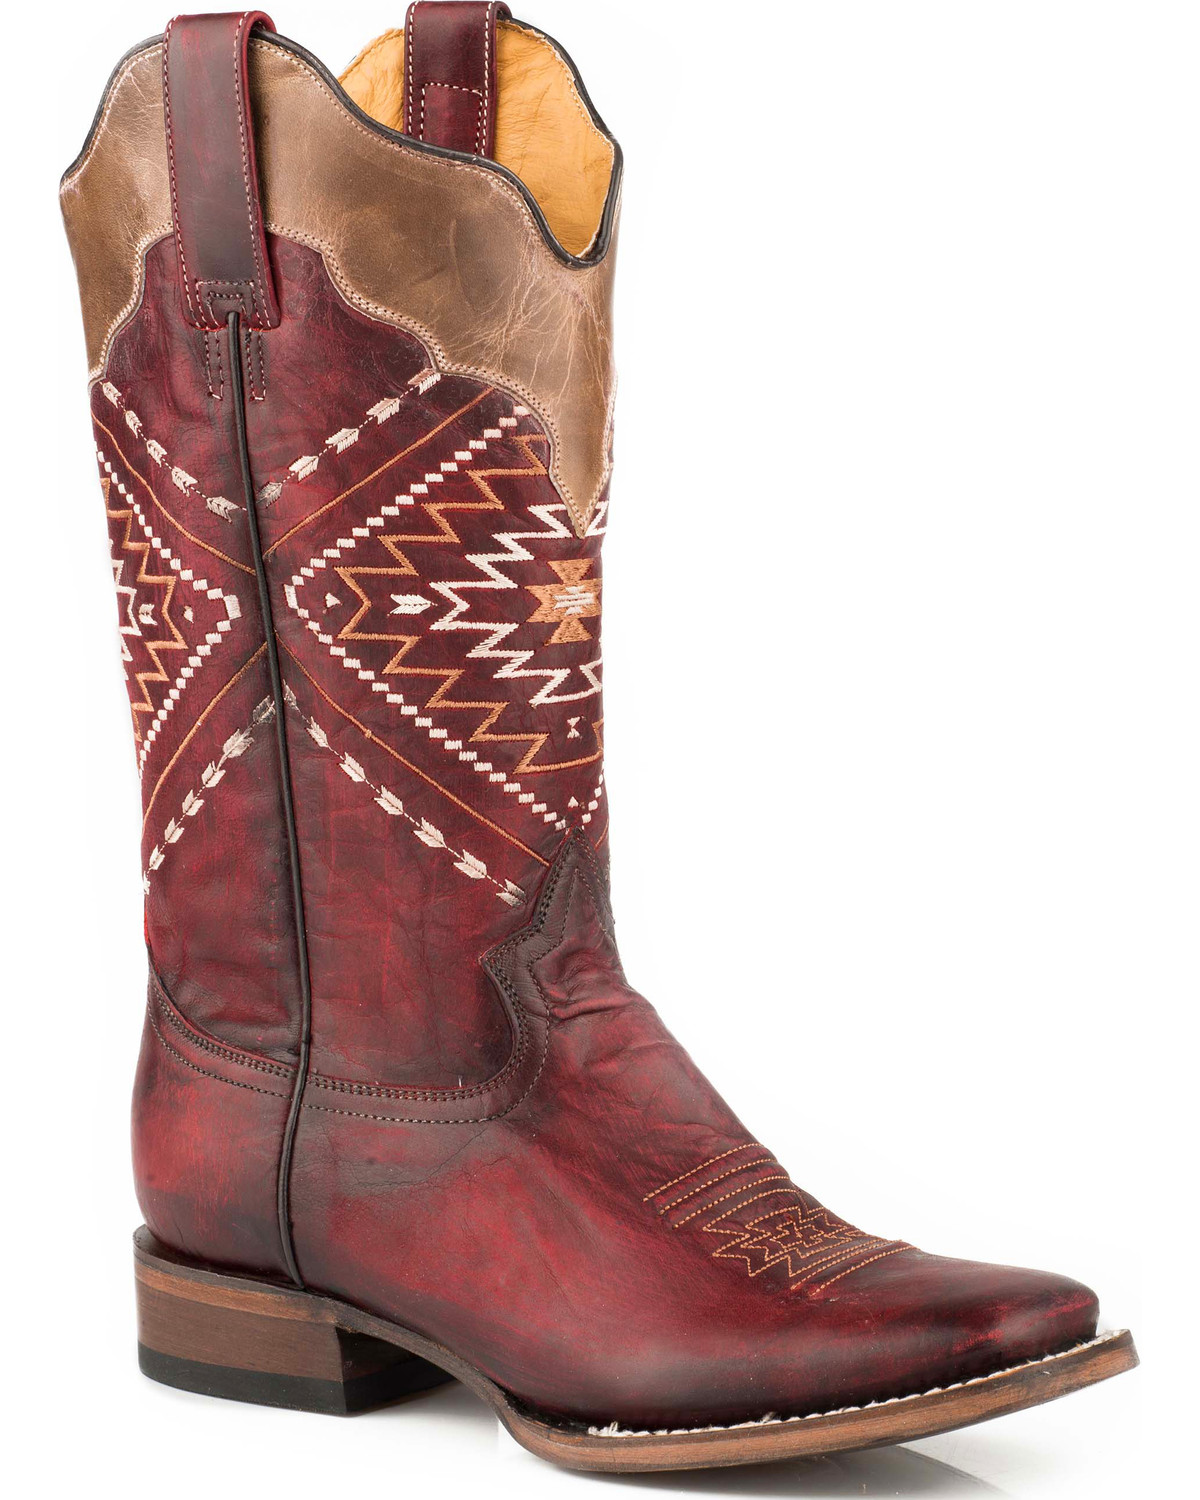 8aa81ce9 Zoomed Image Roper Women's Burgundy Burnish Leather Boots - Square Toe ,  Red, hi-res